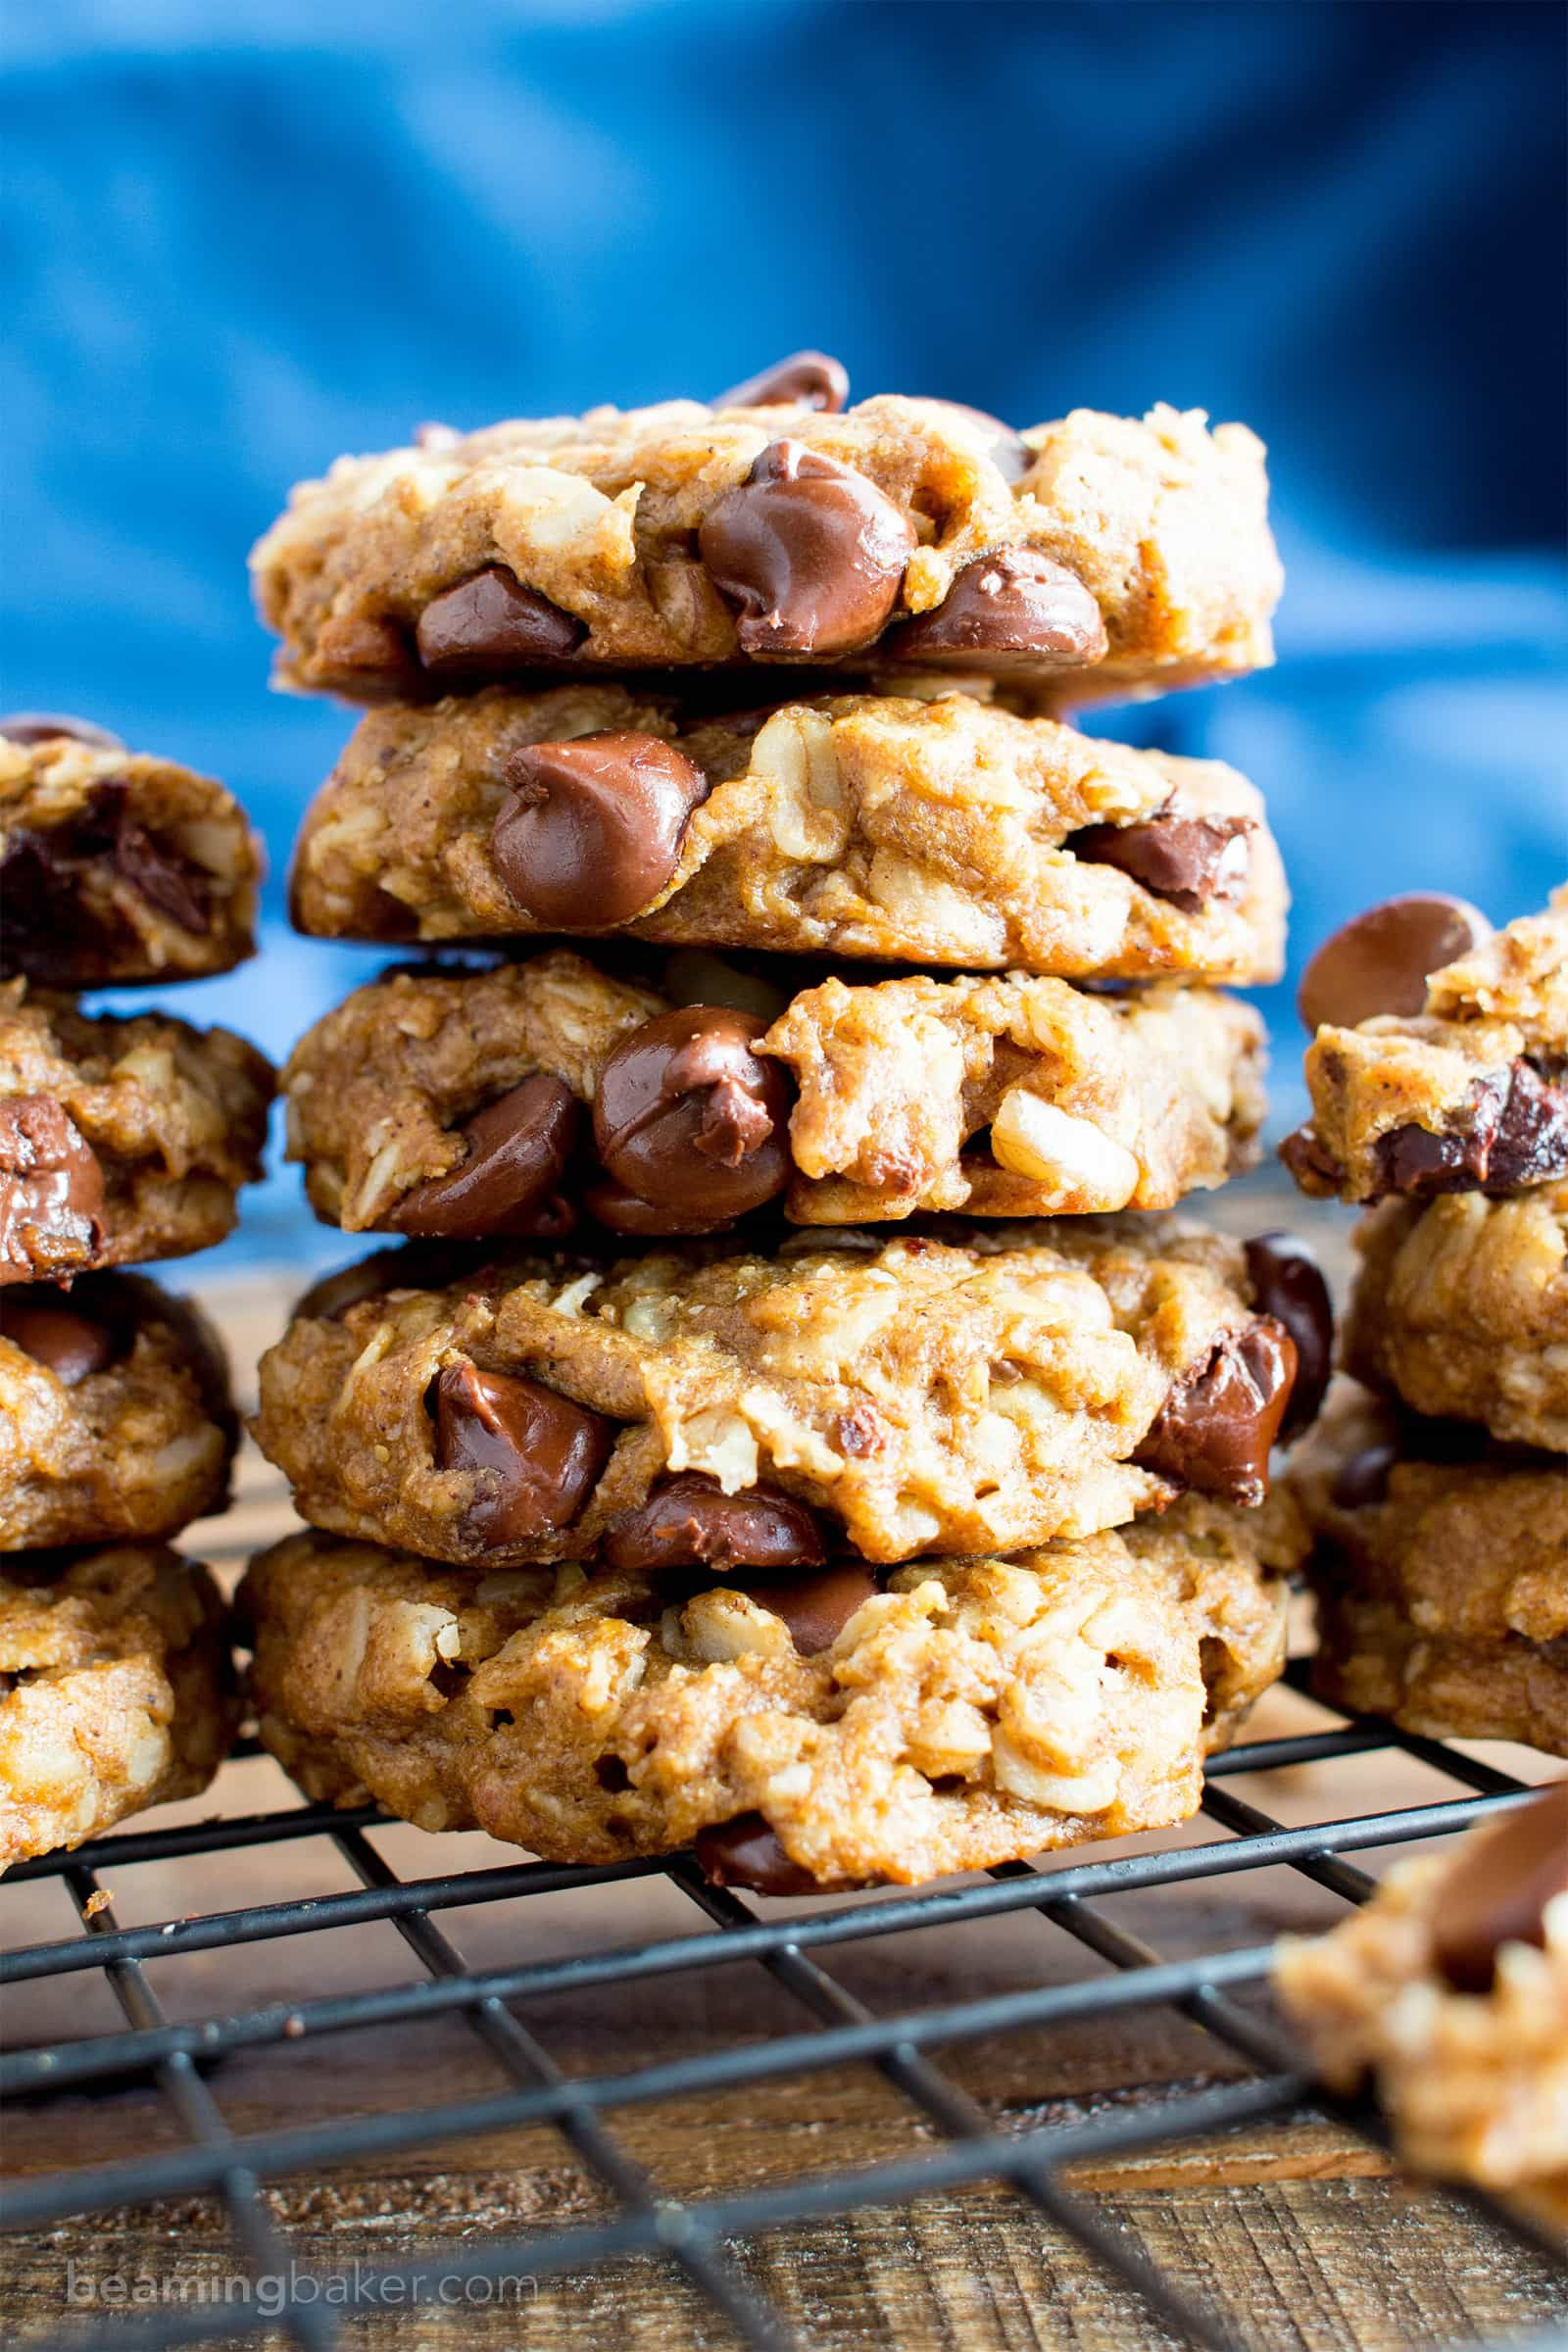 Easy Gluten Free Peanut Butter Chocolate Chip Oatmeal Cookies V